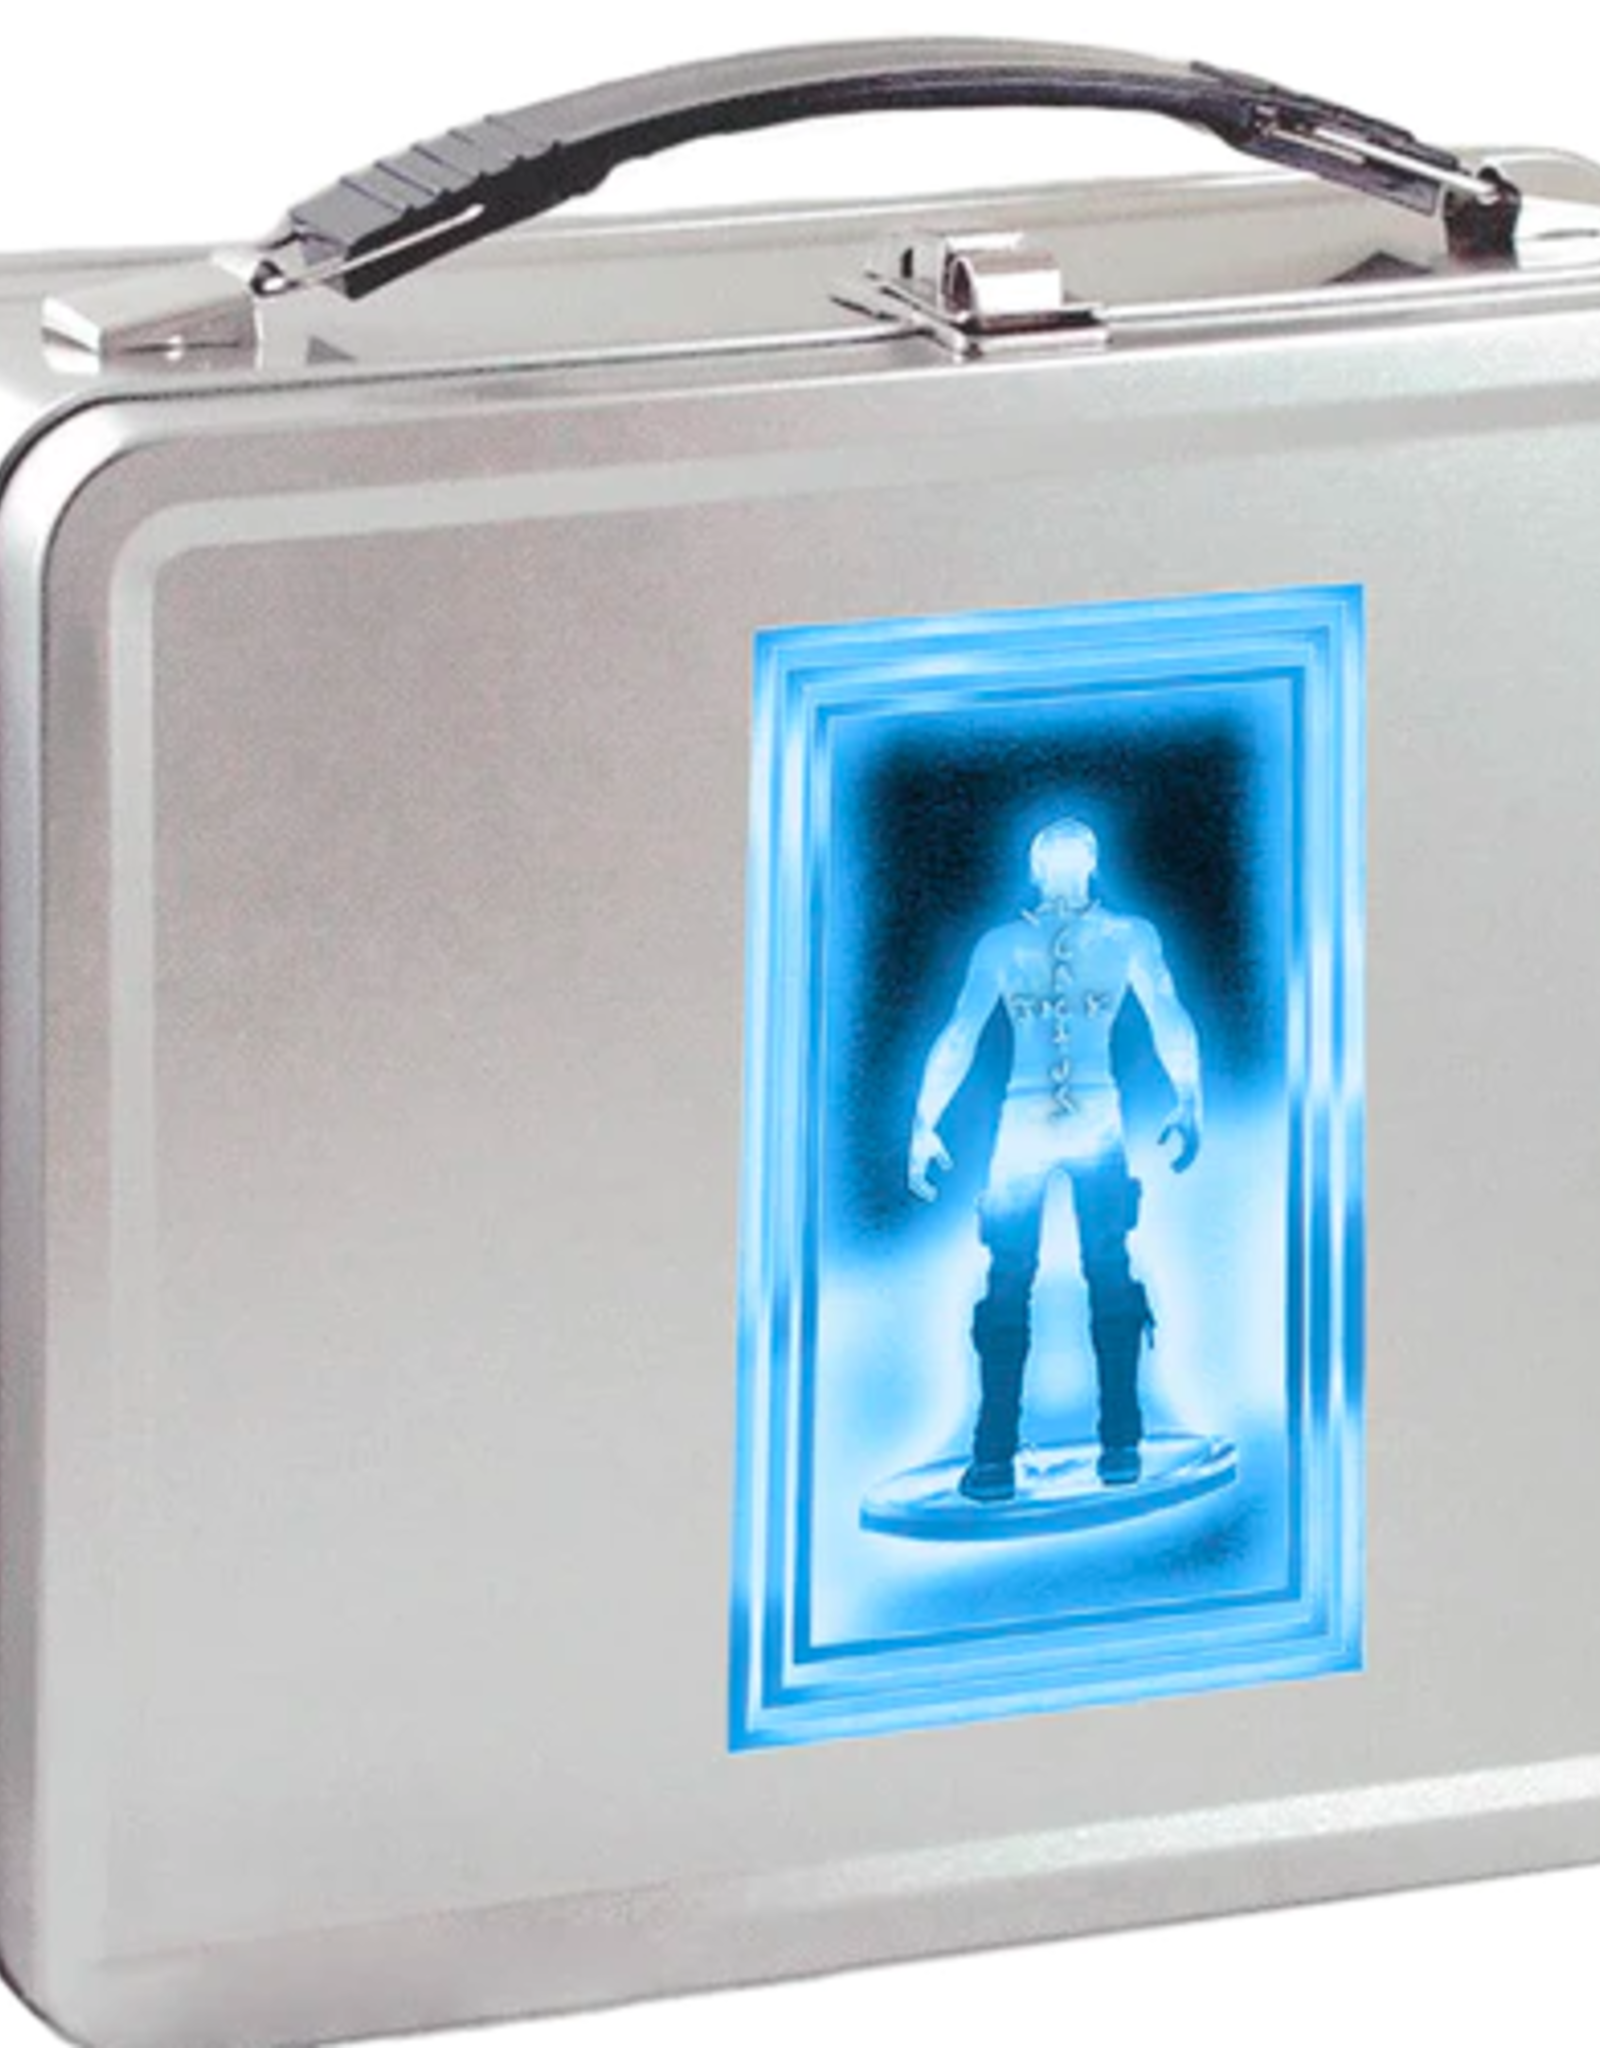 TRAVIS SCOTT Travis Scott T-3500 Metal Fortnite Lunch Box